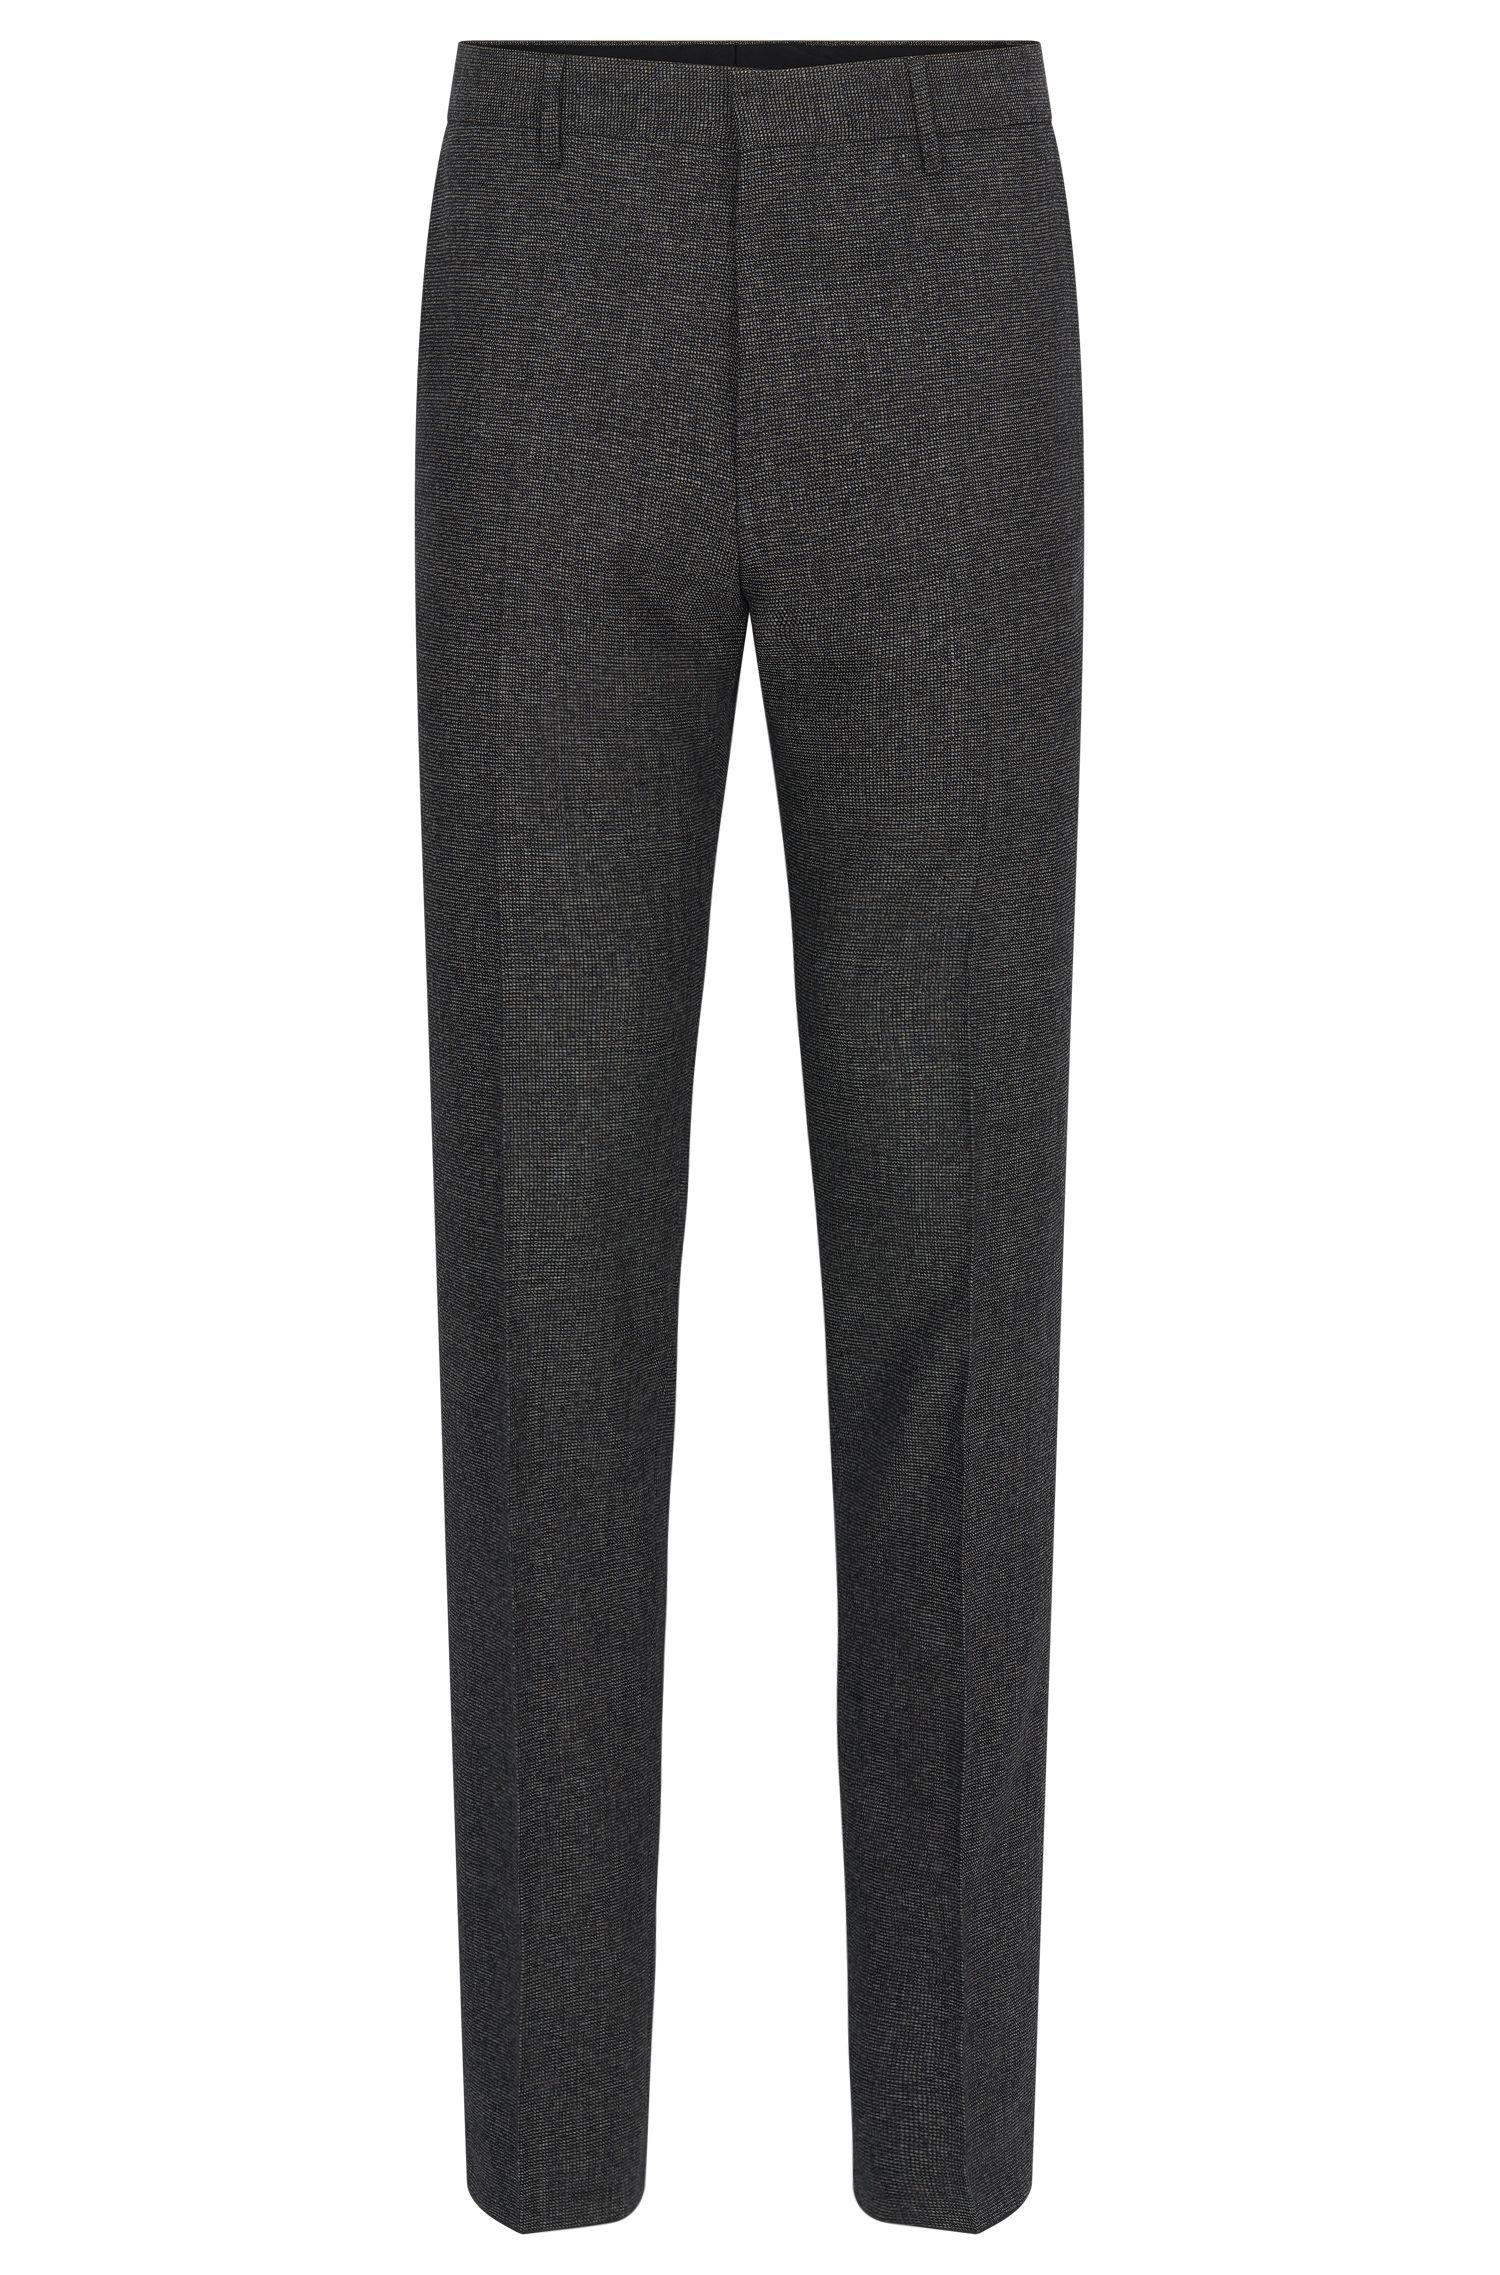 Slim-fit trousers in a wool blend